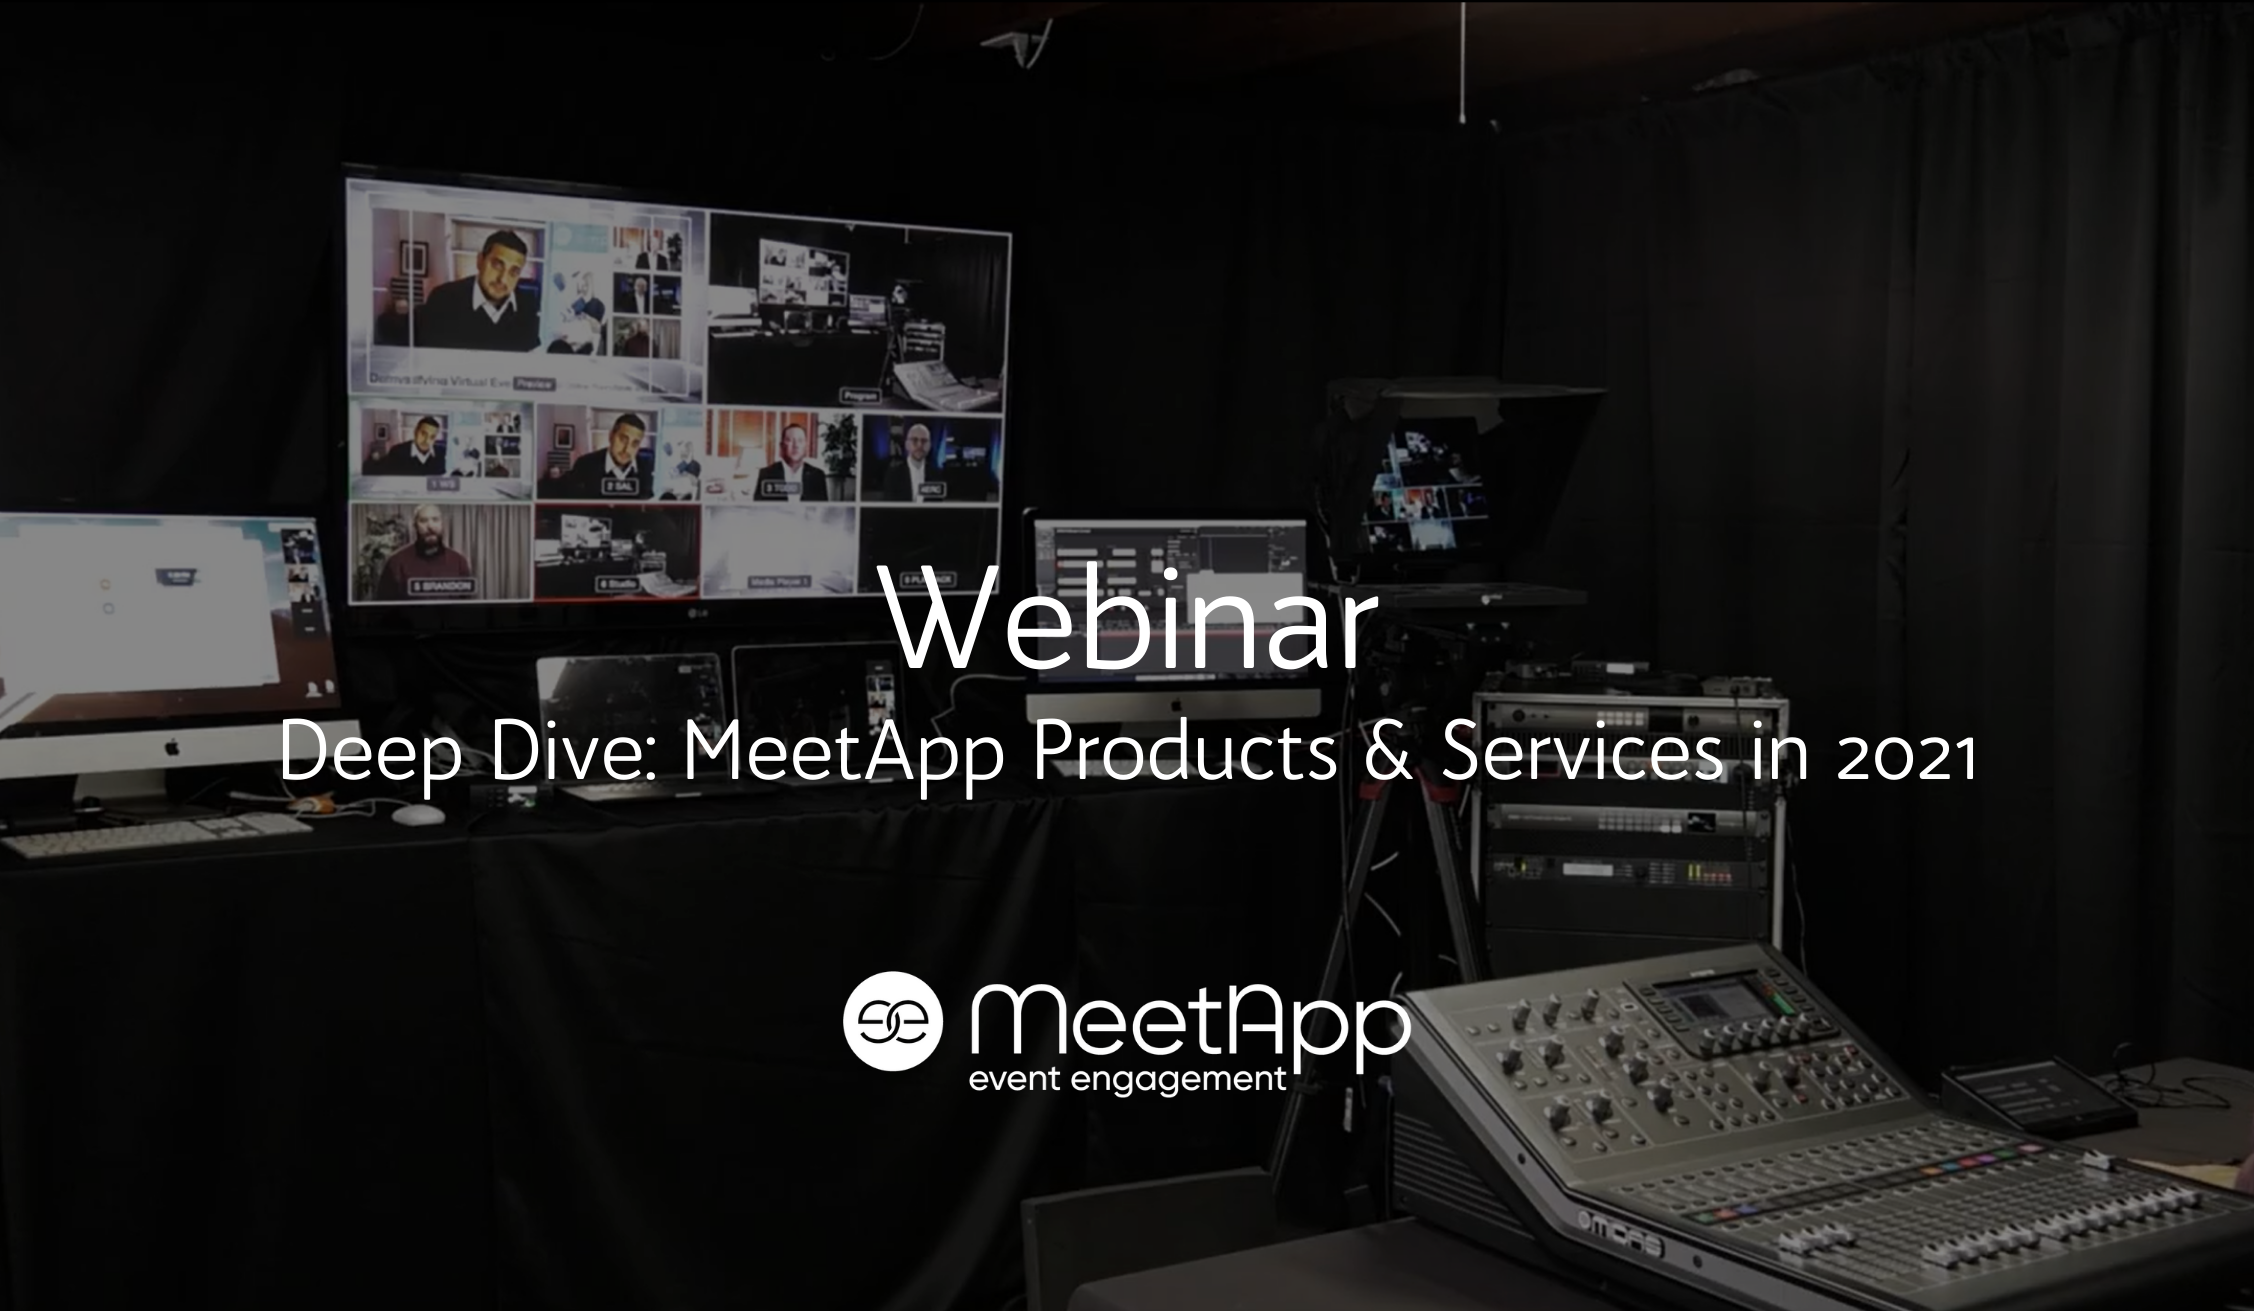 Deep Dive Live Stream: MeetApp Products and Services in 2021